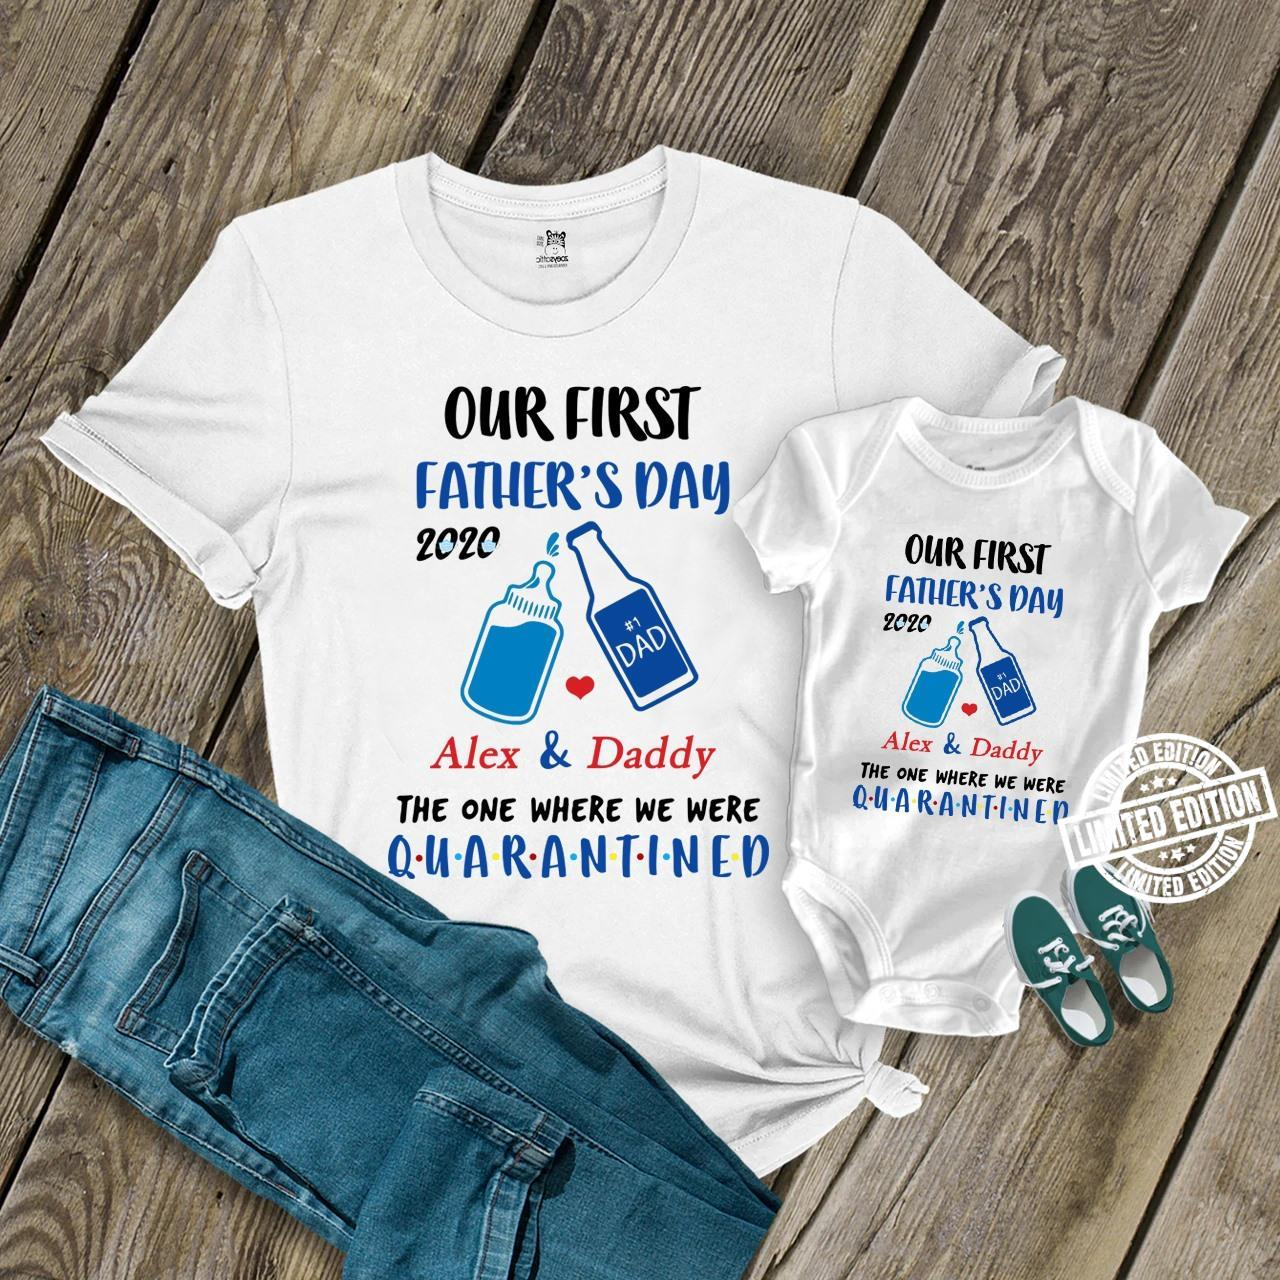 Our first father's day 2020 shirt